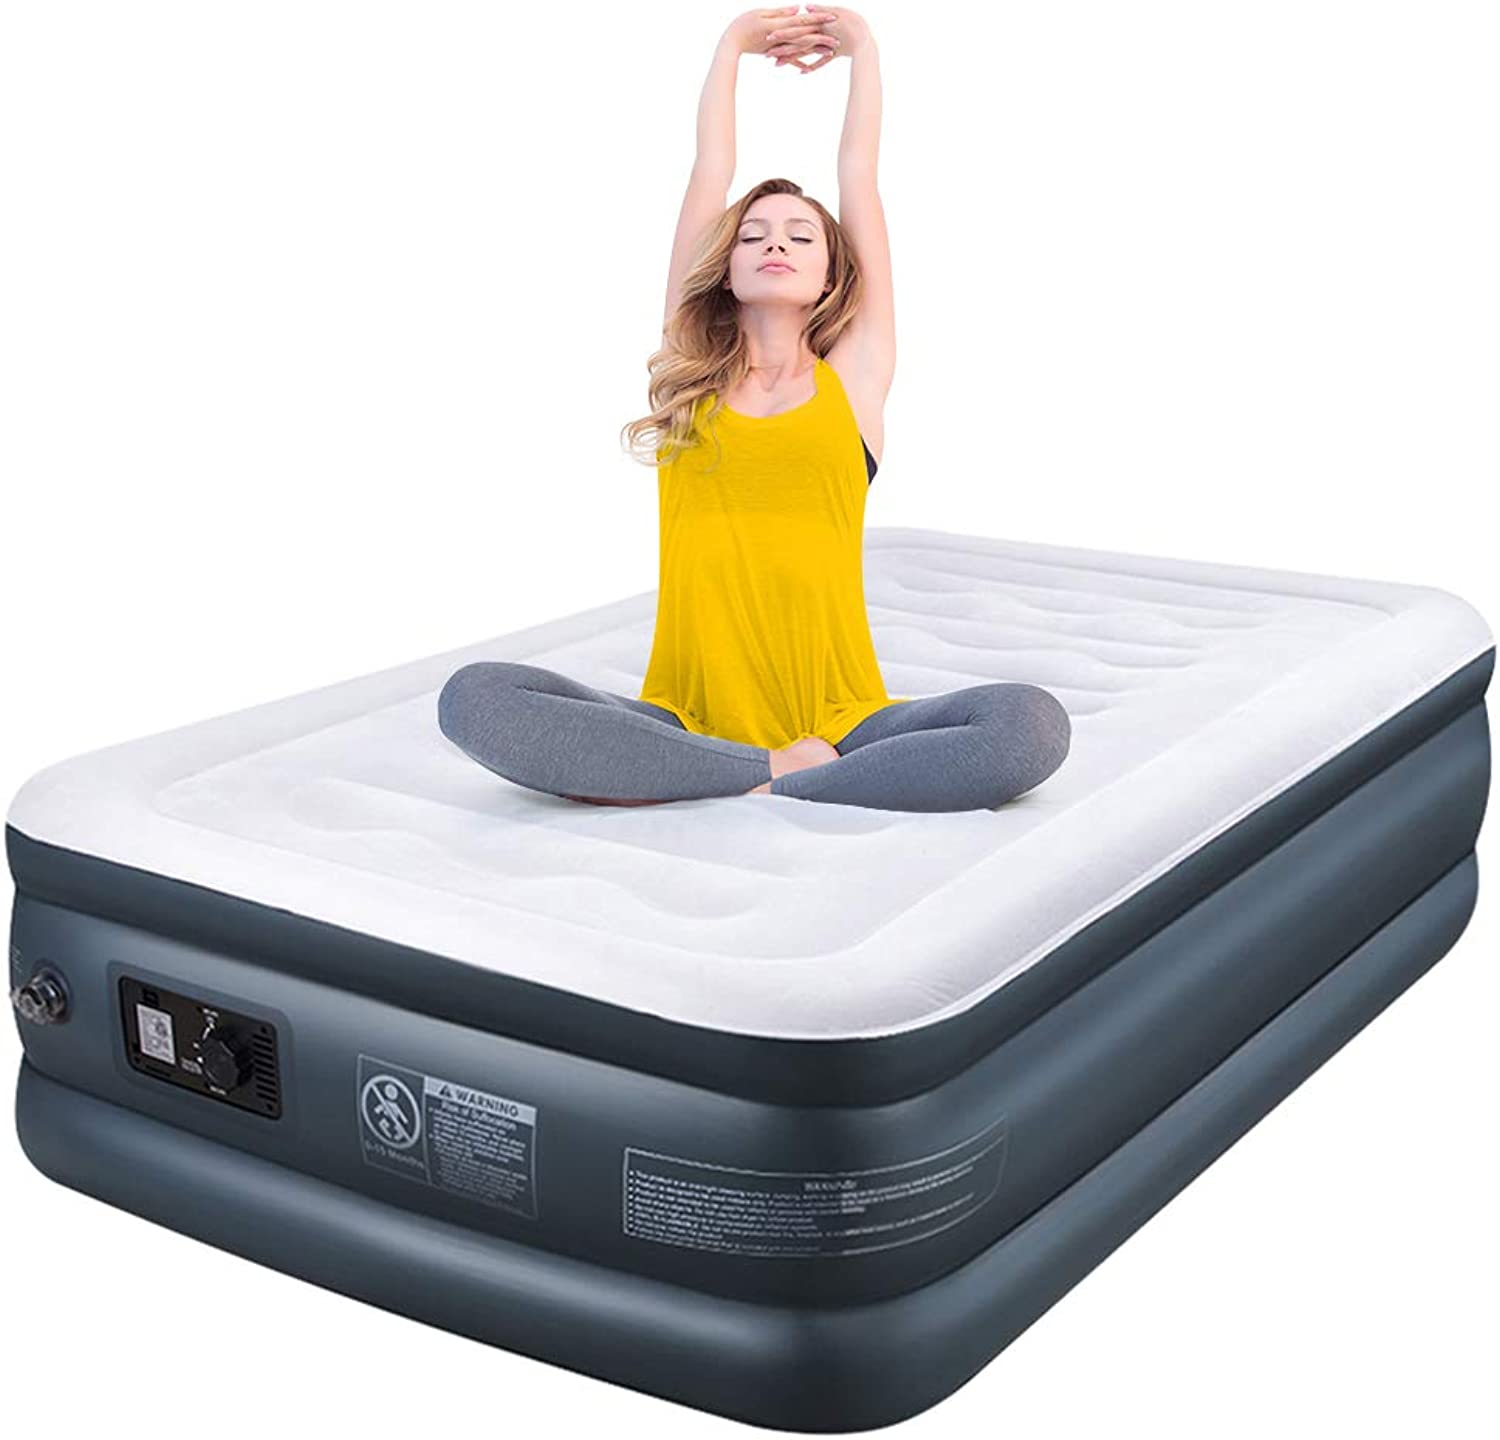 """Camabel Twin Air Mattress with Built in Pump Luxury Raised Inflatable Mattress Blow Up Mattress Elevated Double High Airbed Flocked Top for Comfort with High Capacity Electric Pump, Bed Height 18"""""""